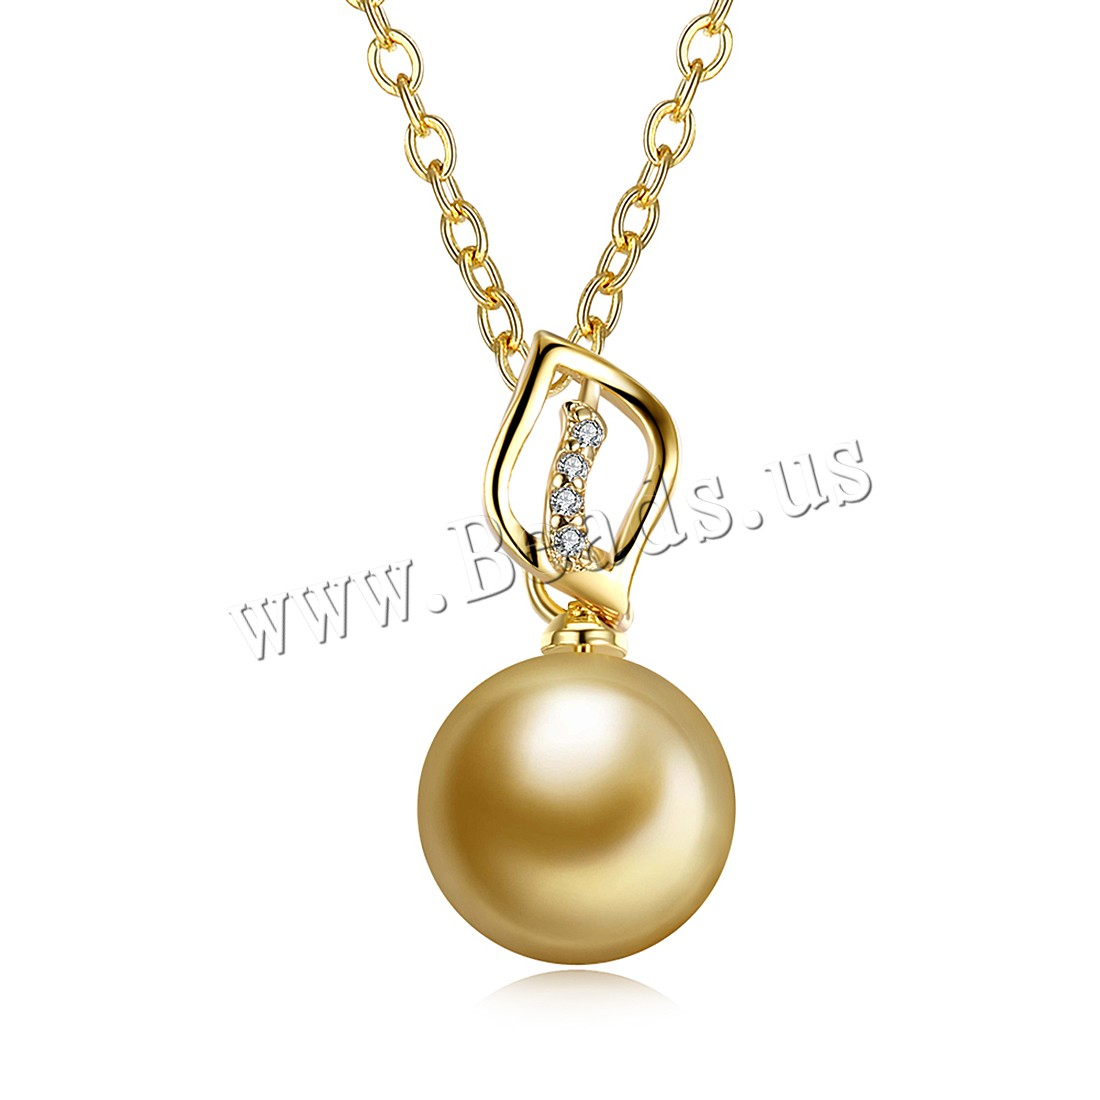 Buy Comeon® Jewelry Necklace Brass Freshwater Pearl 1.9lnch extender chain real gold plated natural & oval chain & woman & cubic zirconia nickel lead & cadmium free 11x23mm Sold Per Approx 17.7 Inch Strand